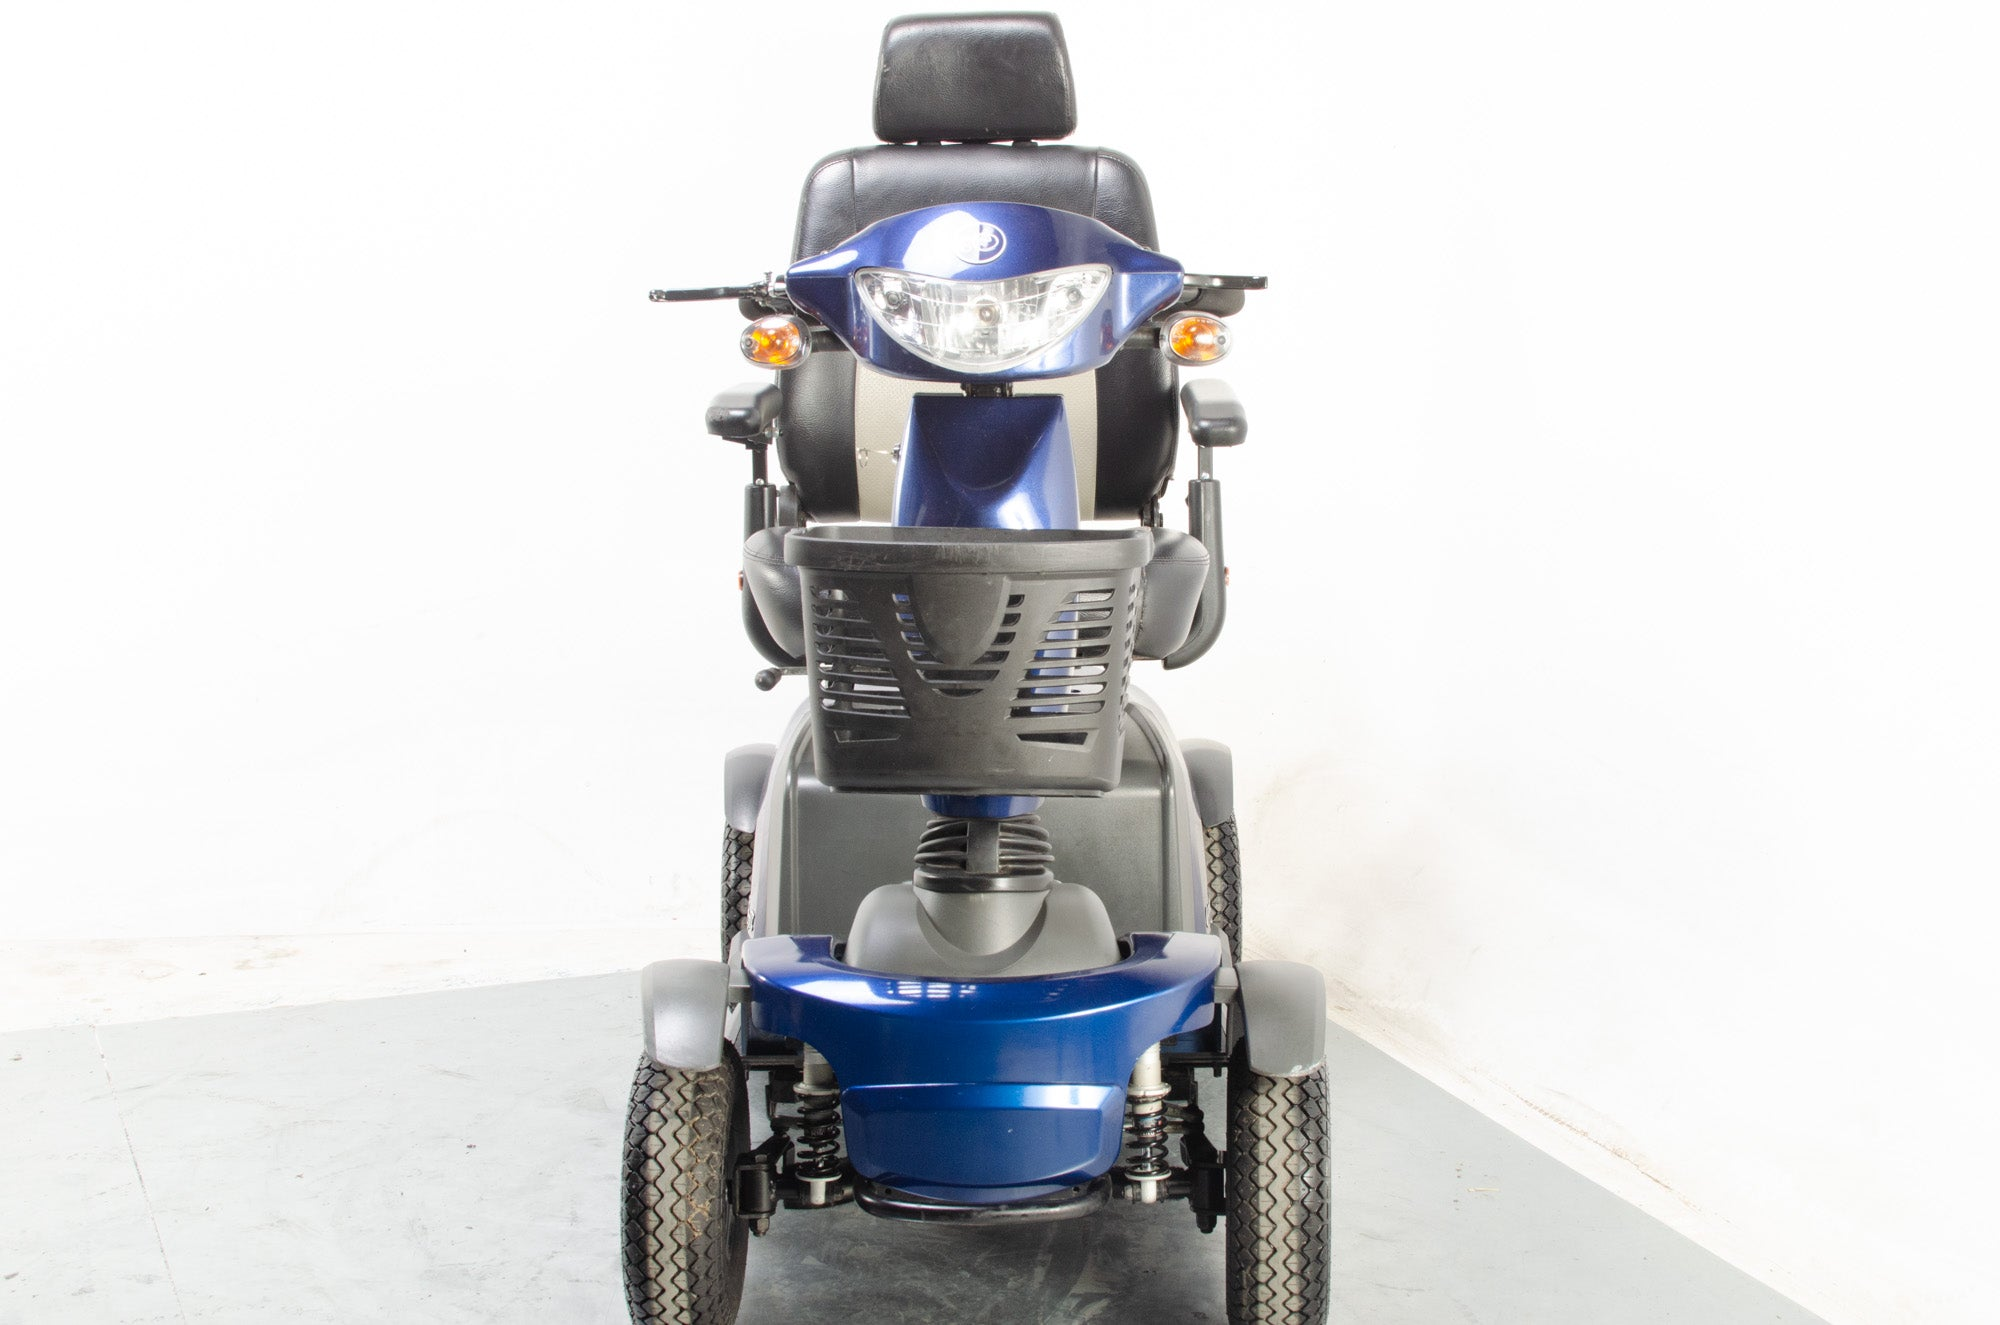 Van Os Galaxy II Used Electric Mobility Scooter 8mph All-Terrain Large Off-Road